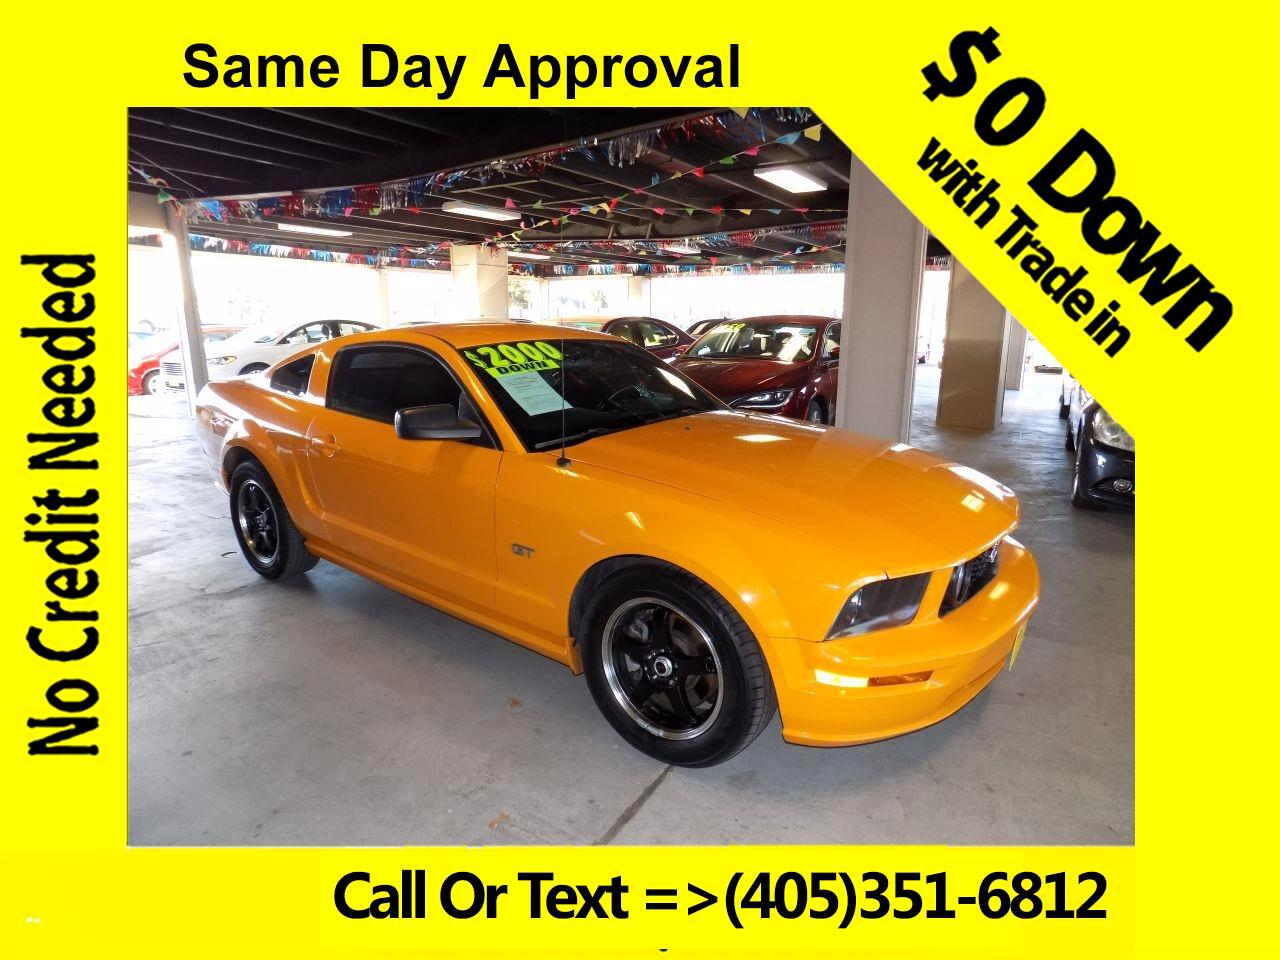 2008 Ford Mustang GT Deluxe Coupe